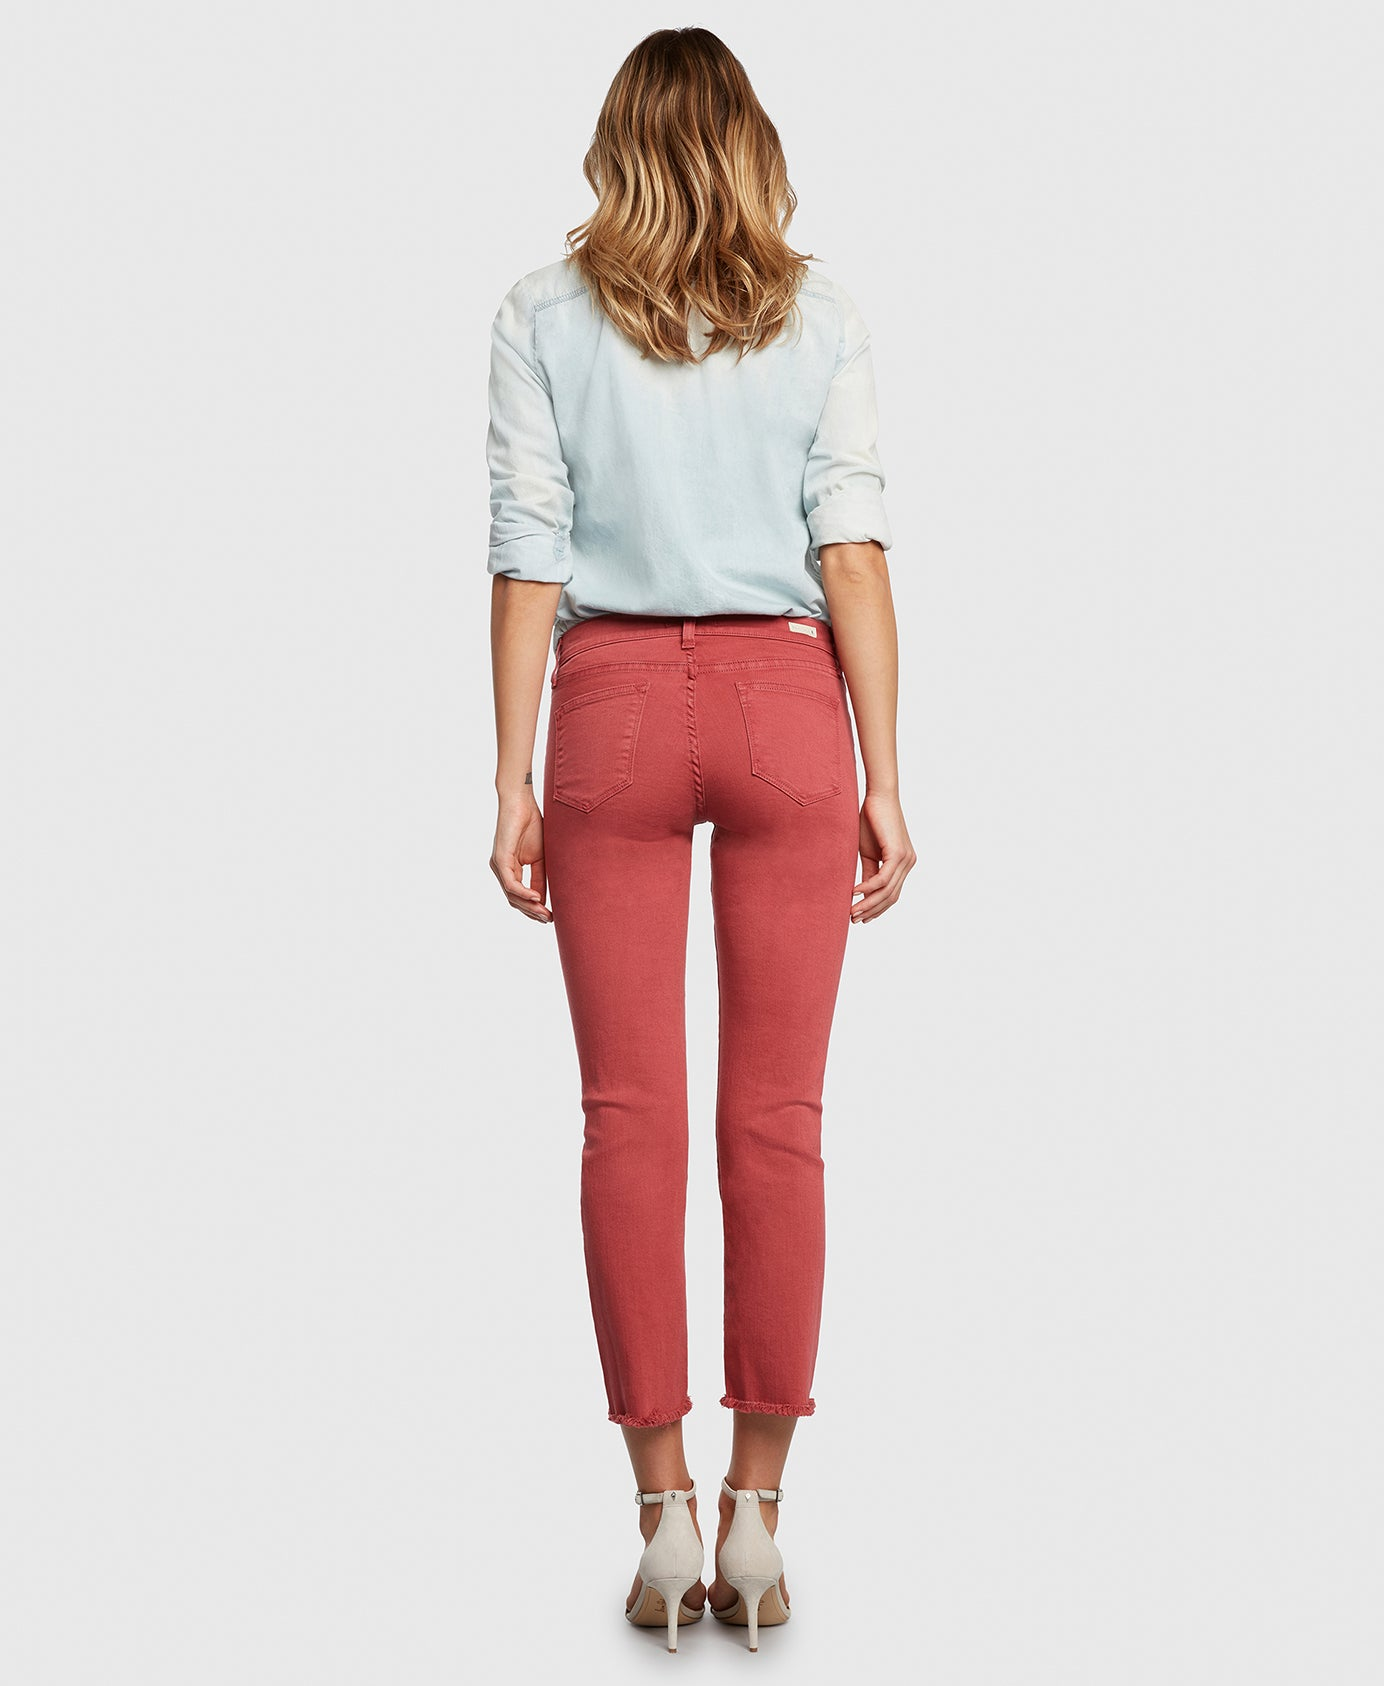 Principle OPTIMIST in Nantucket red denim back